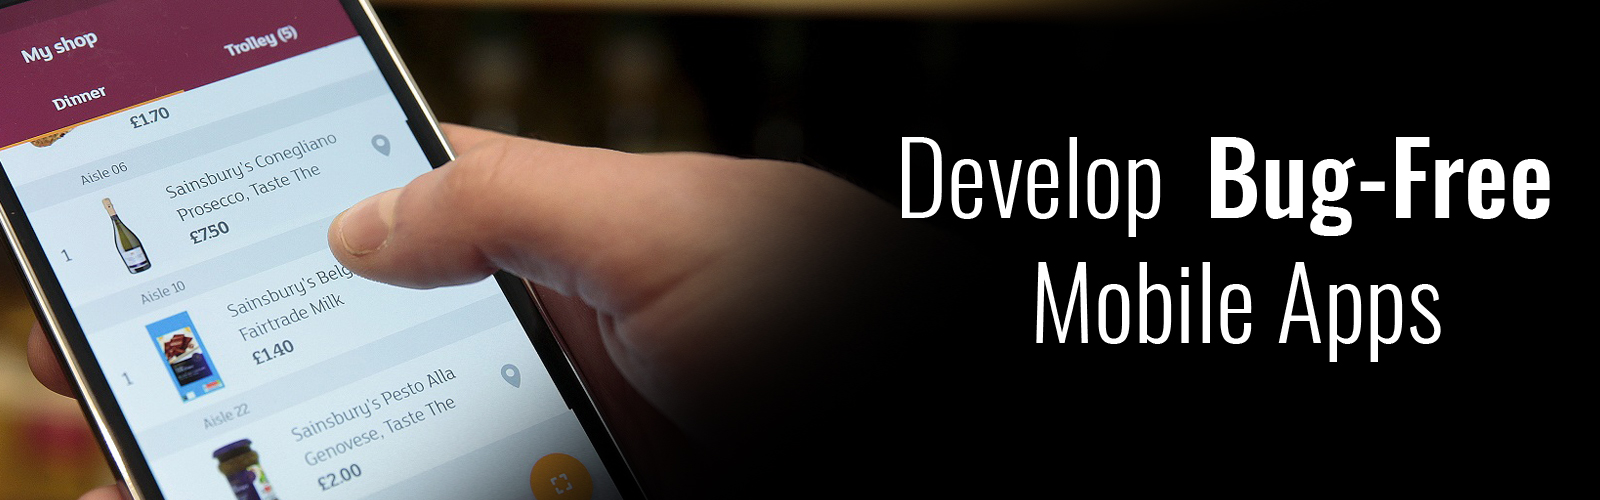 develop bug-free mobile applications